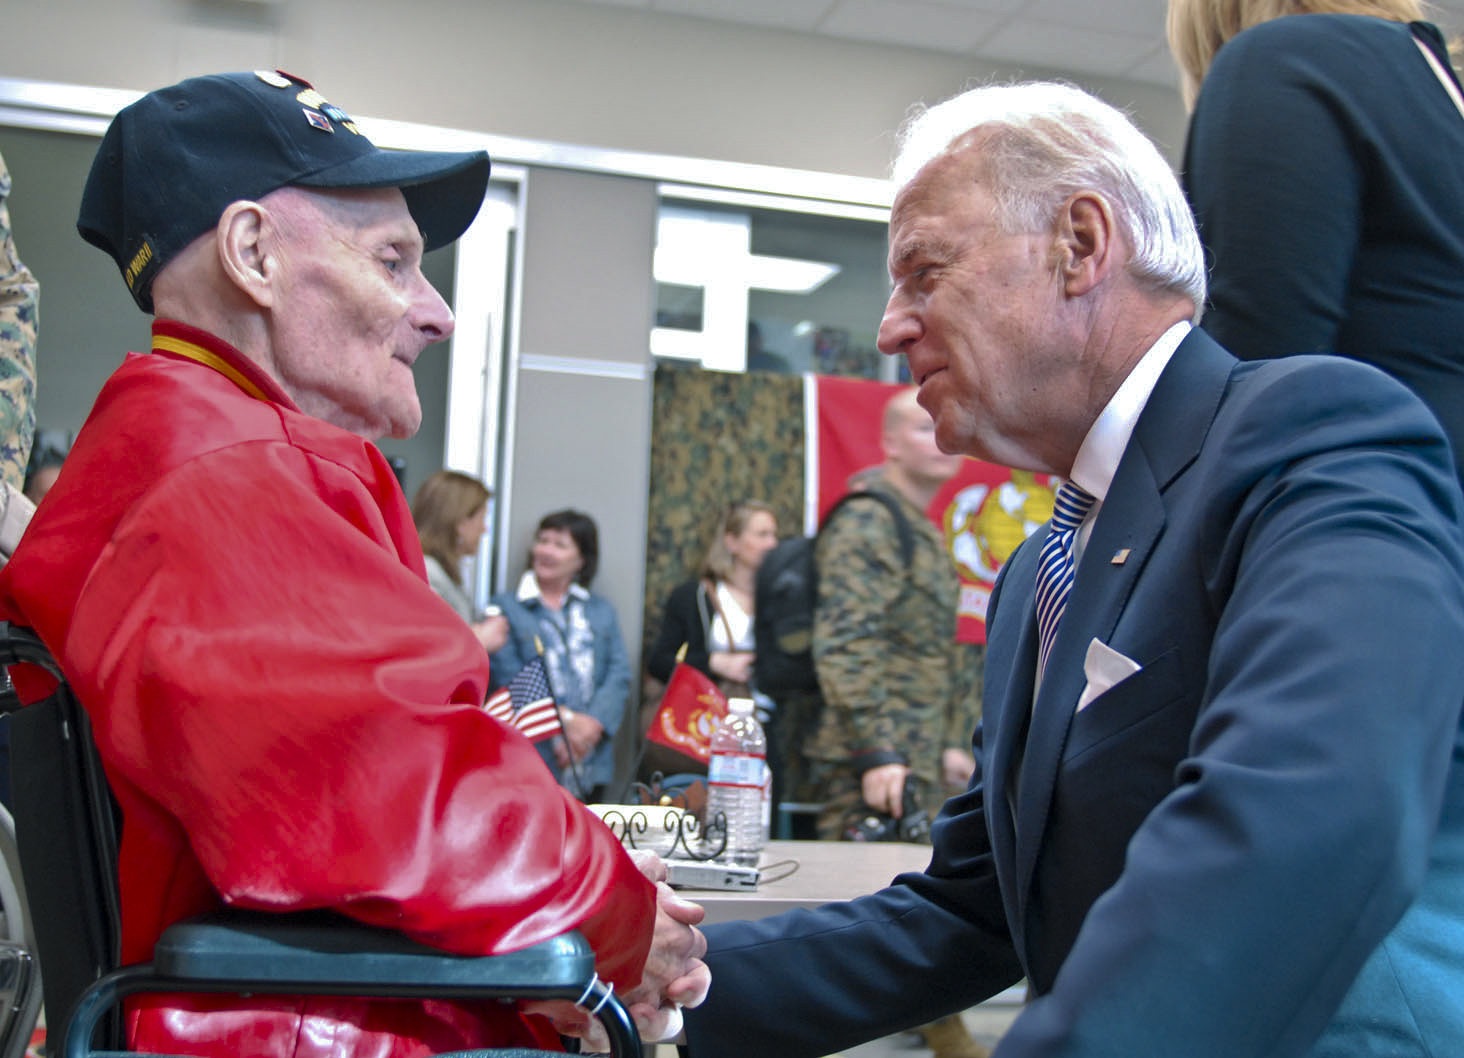 About Joe Biden - Joe Biden was the 47th vice president of the United States under President Barack Obama.  Previously, Joe Biden was a U.S. senator for the State of Delaware. Having served 36 years in the Senate, Joe Biden is the longest-serving senator in Delaware's history and, elected at 29 years of age, was the fifth-youngest senator to be to be elected in U.S. history. During his over four decades of public service, Joe Biden has tirelessly fought for our nation's veterans and military.  Click here to view an unofficial biography of Joe Biden.